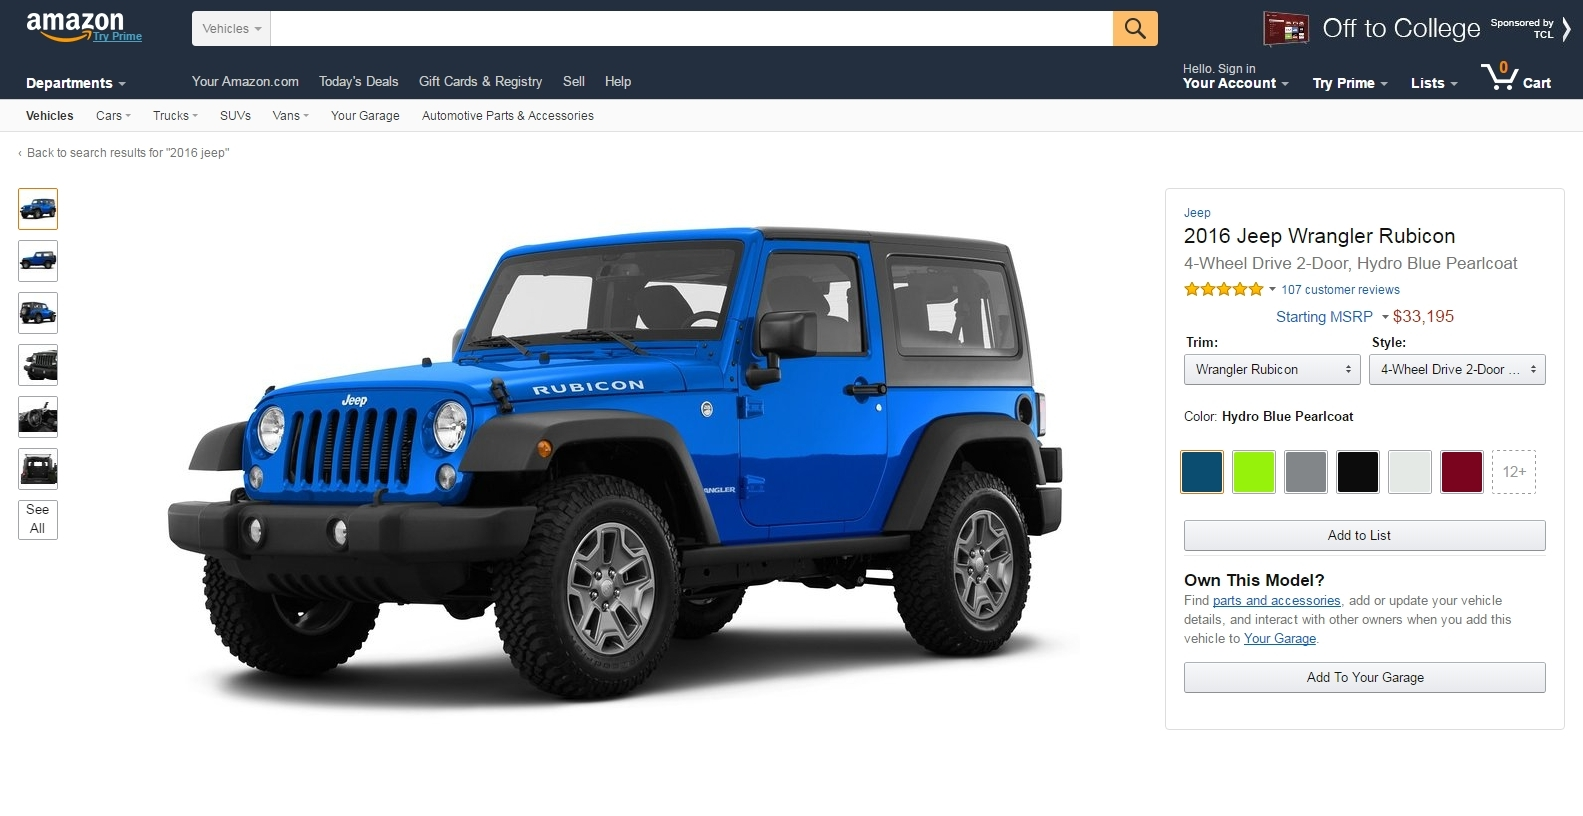 Amazon announces a special forum just for car enthusiasts